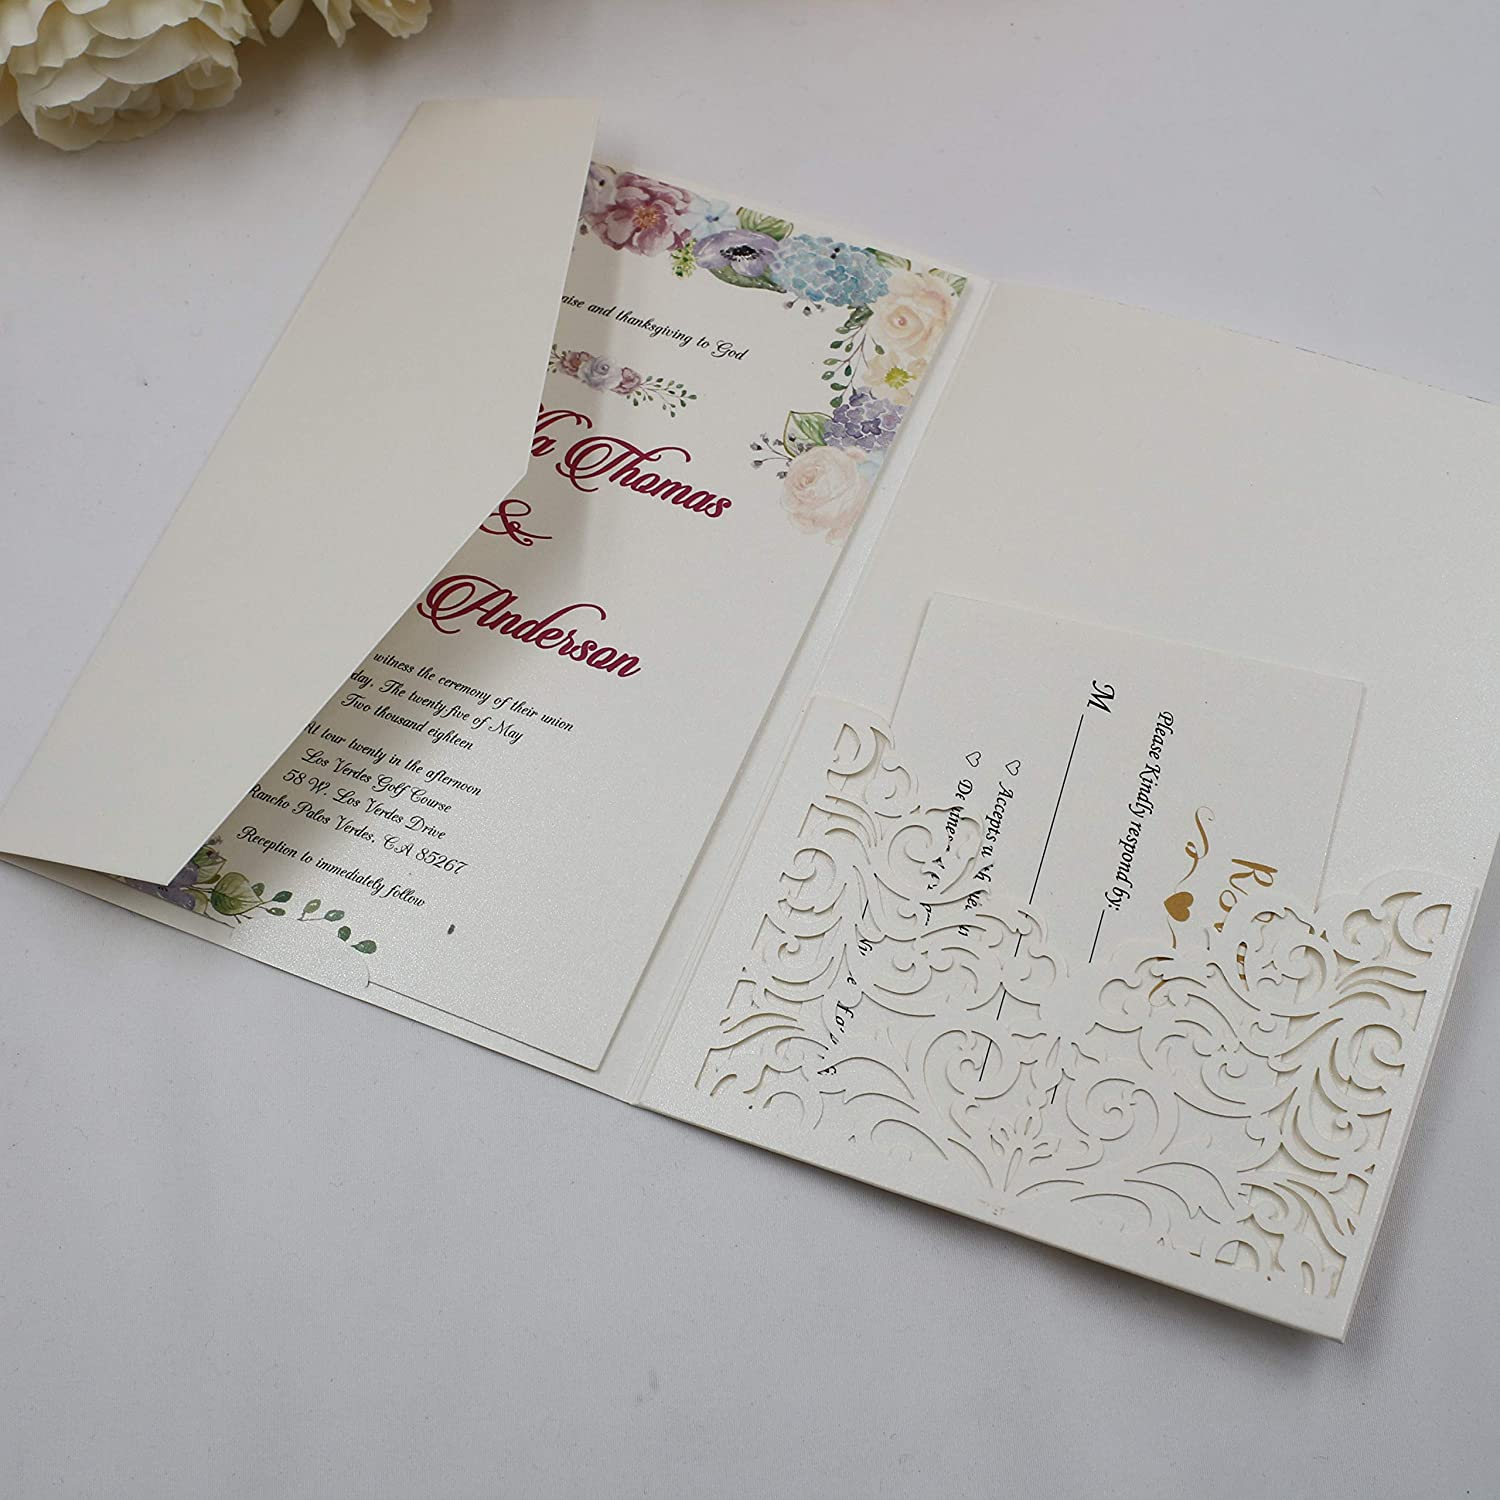 25pcs Ivory Pearl Paper Vine Tri Fold Wedding Invitations Cards Laser Cut Vertico pocket Hollow Carving Greeting invites Covers only no envelope no ...